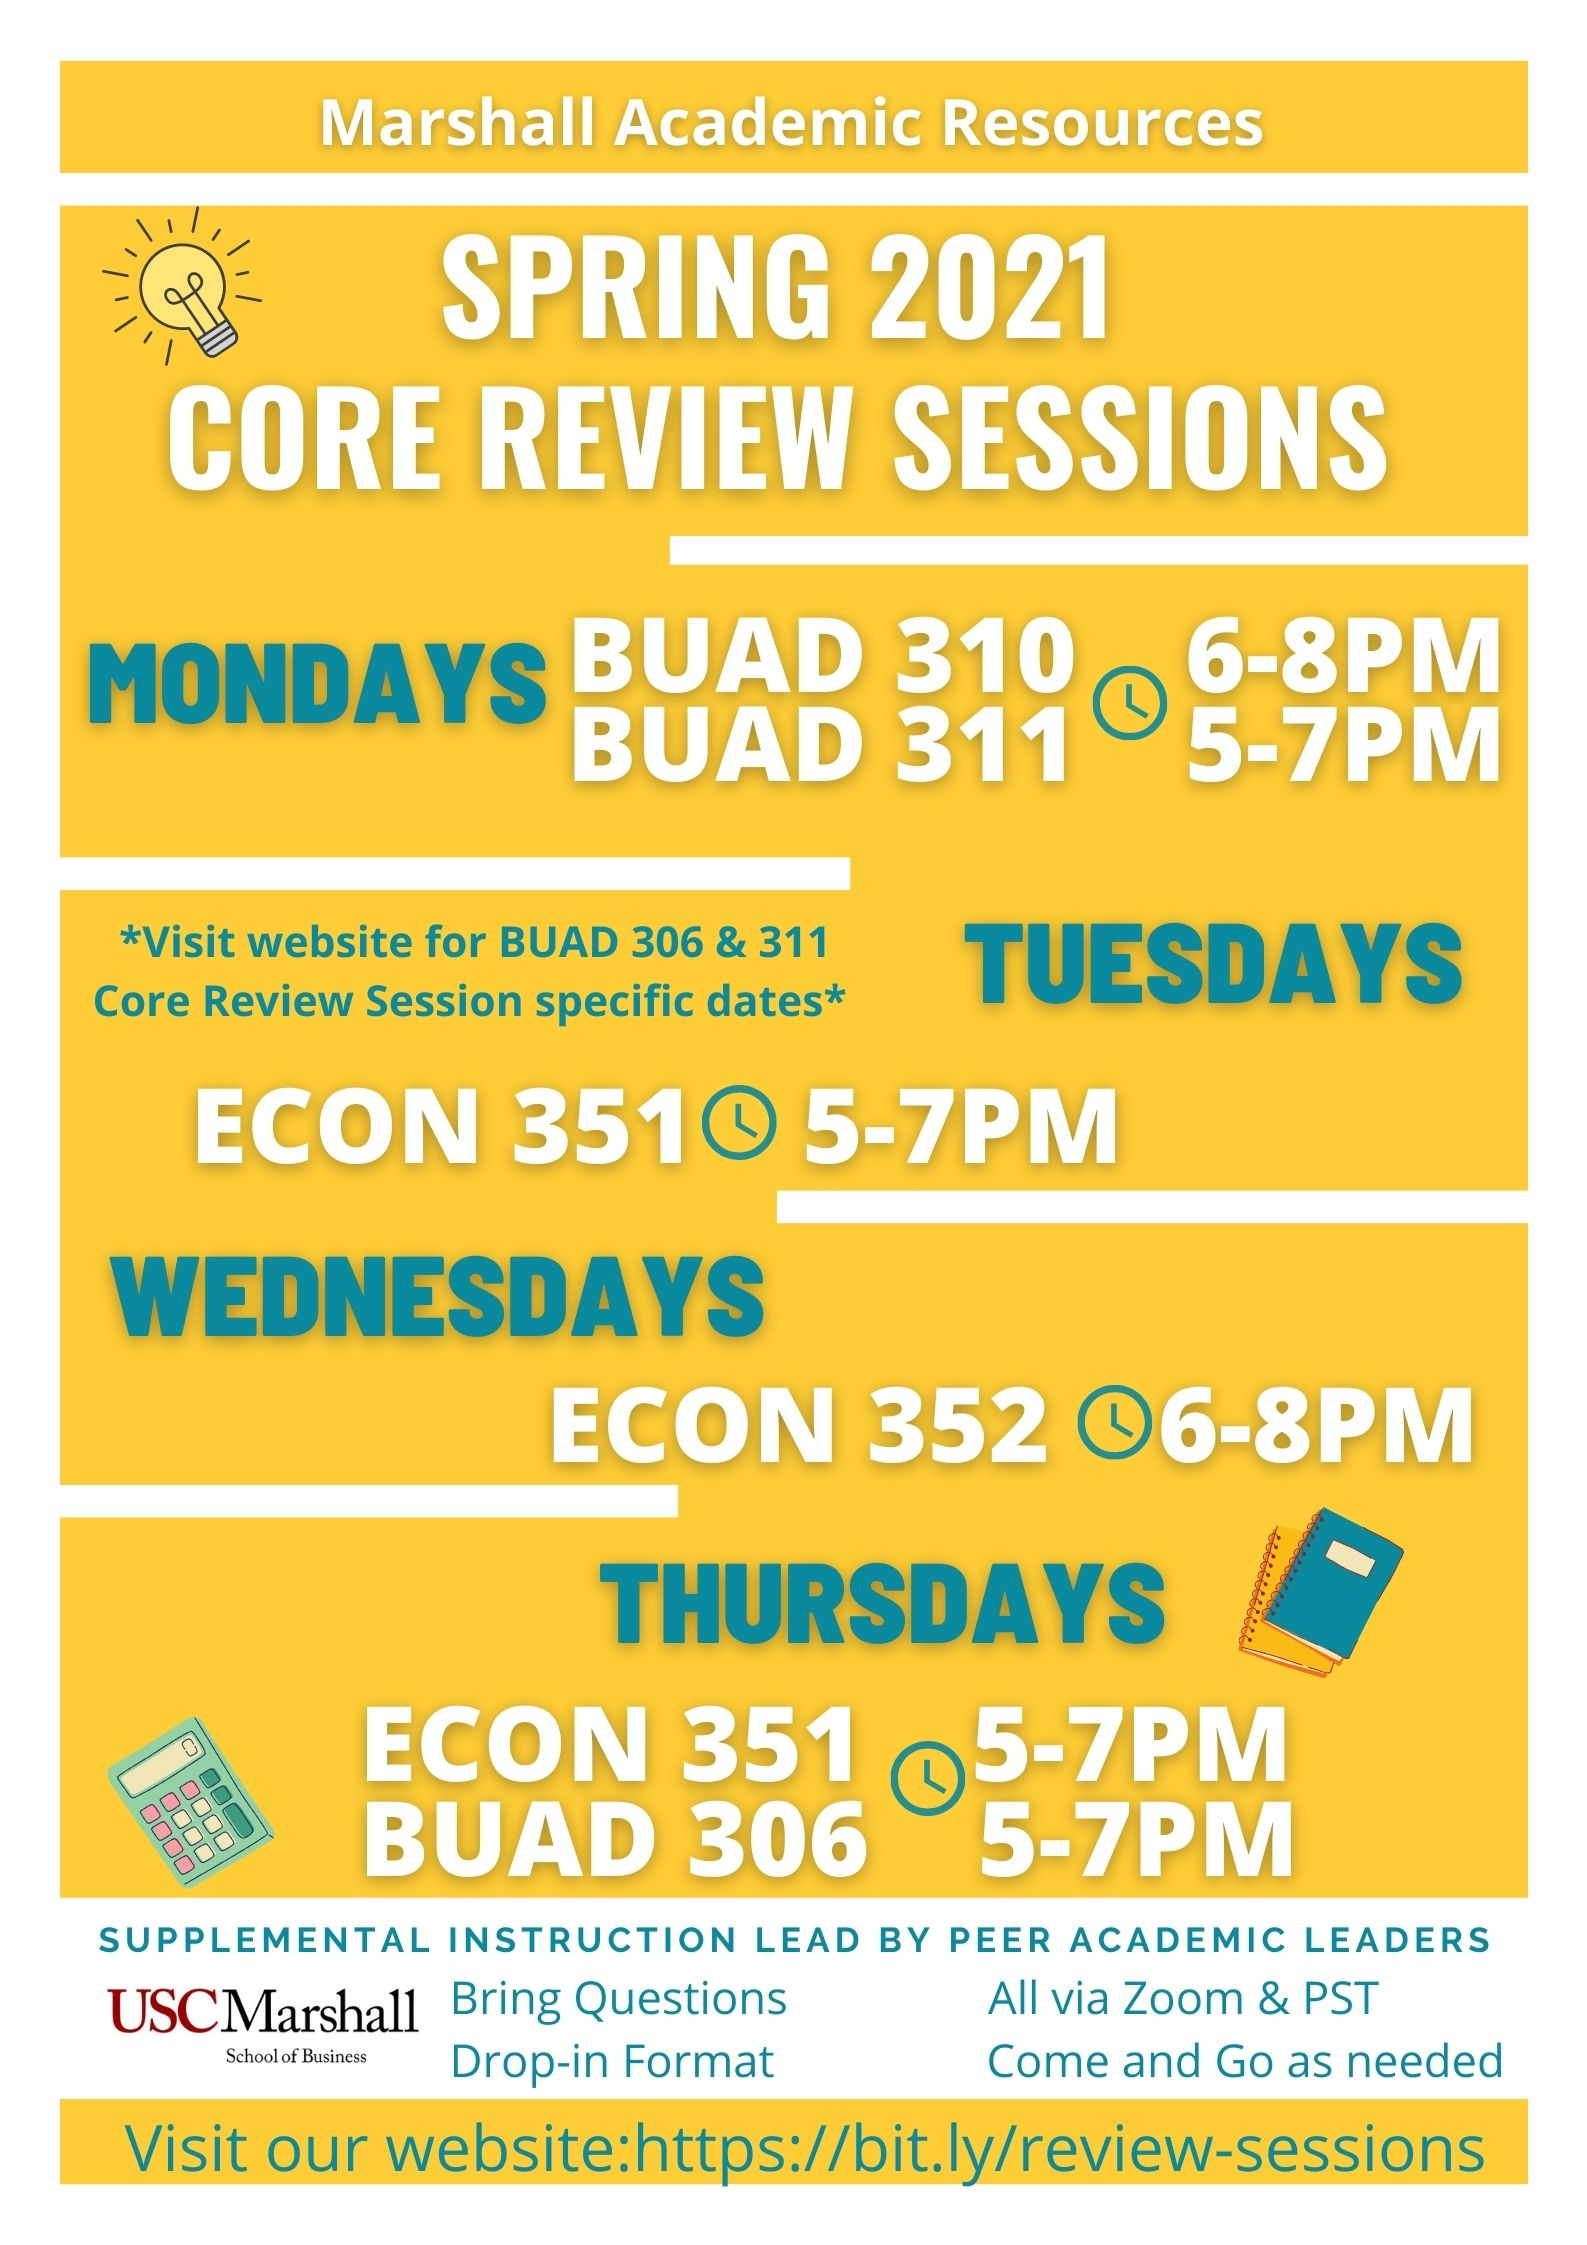 Spring 2021 Core Review Sessions